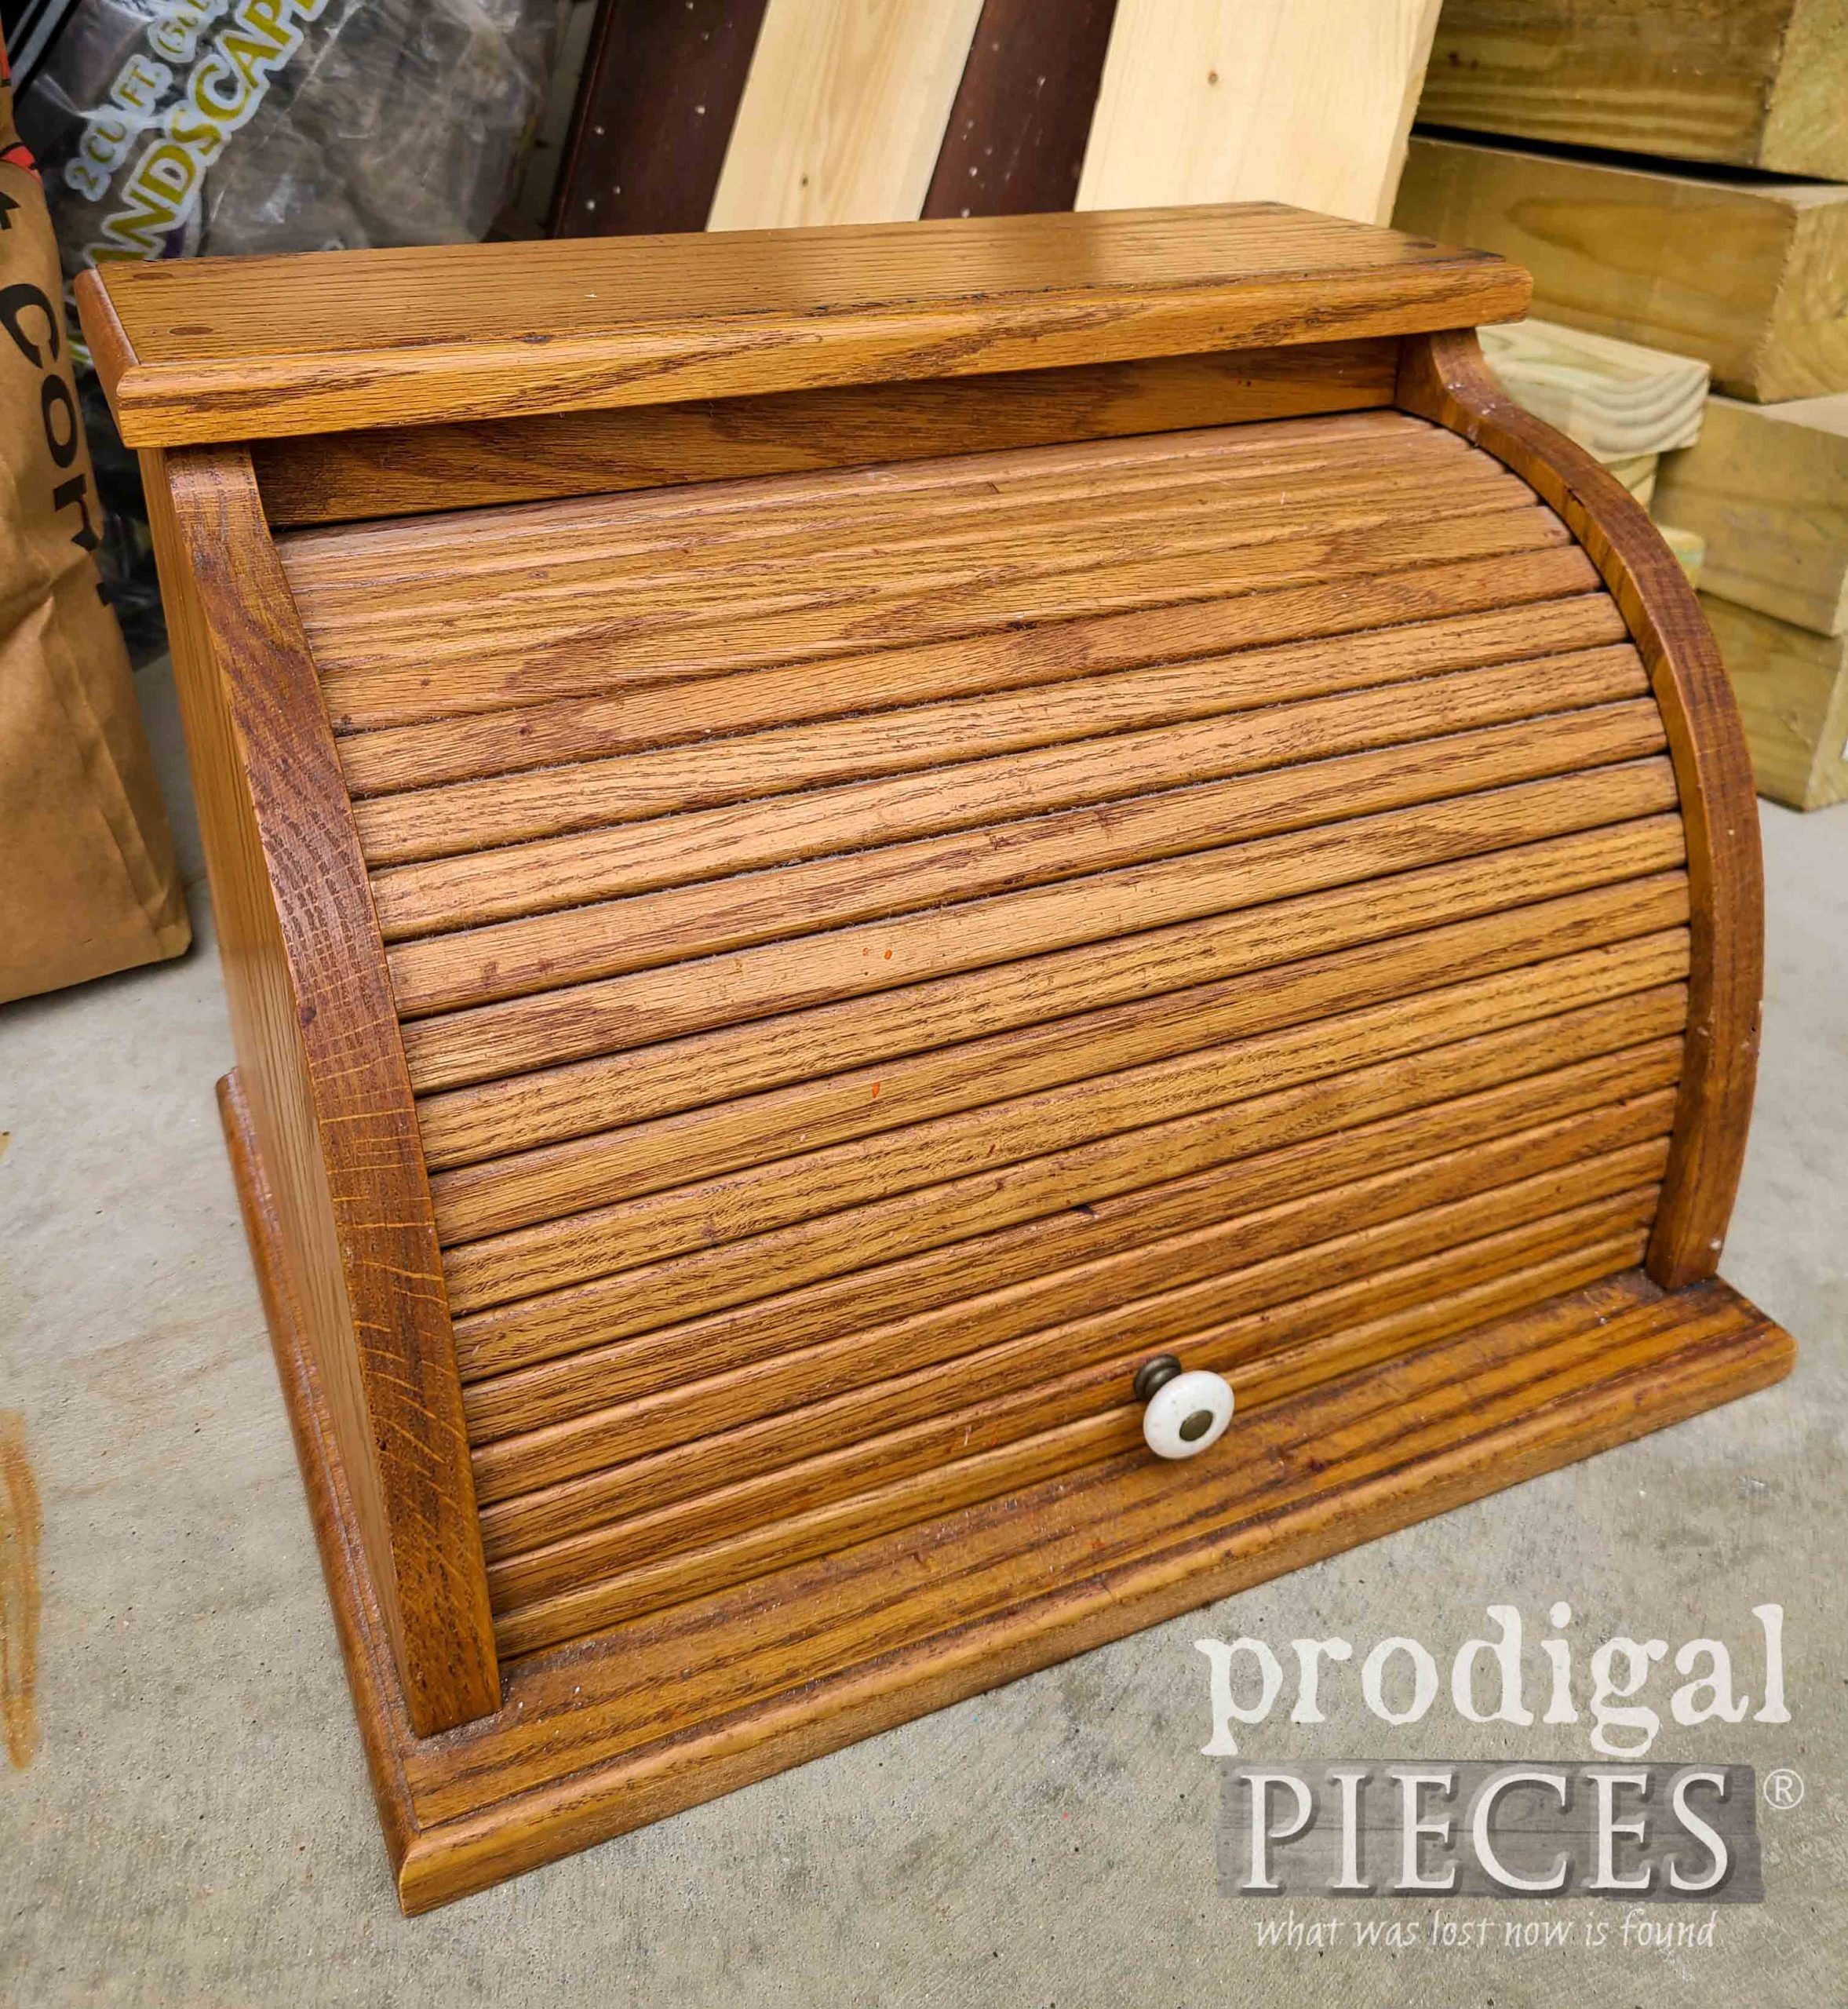 Vintage Bread Box Before Makeover by Larissa of Prodigal Pieces | prodigalpieces.com #prodigalpieces